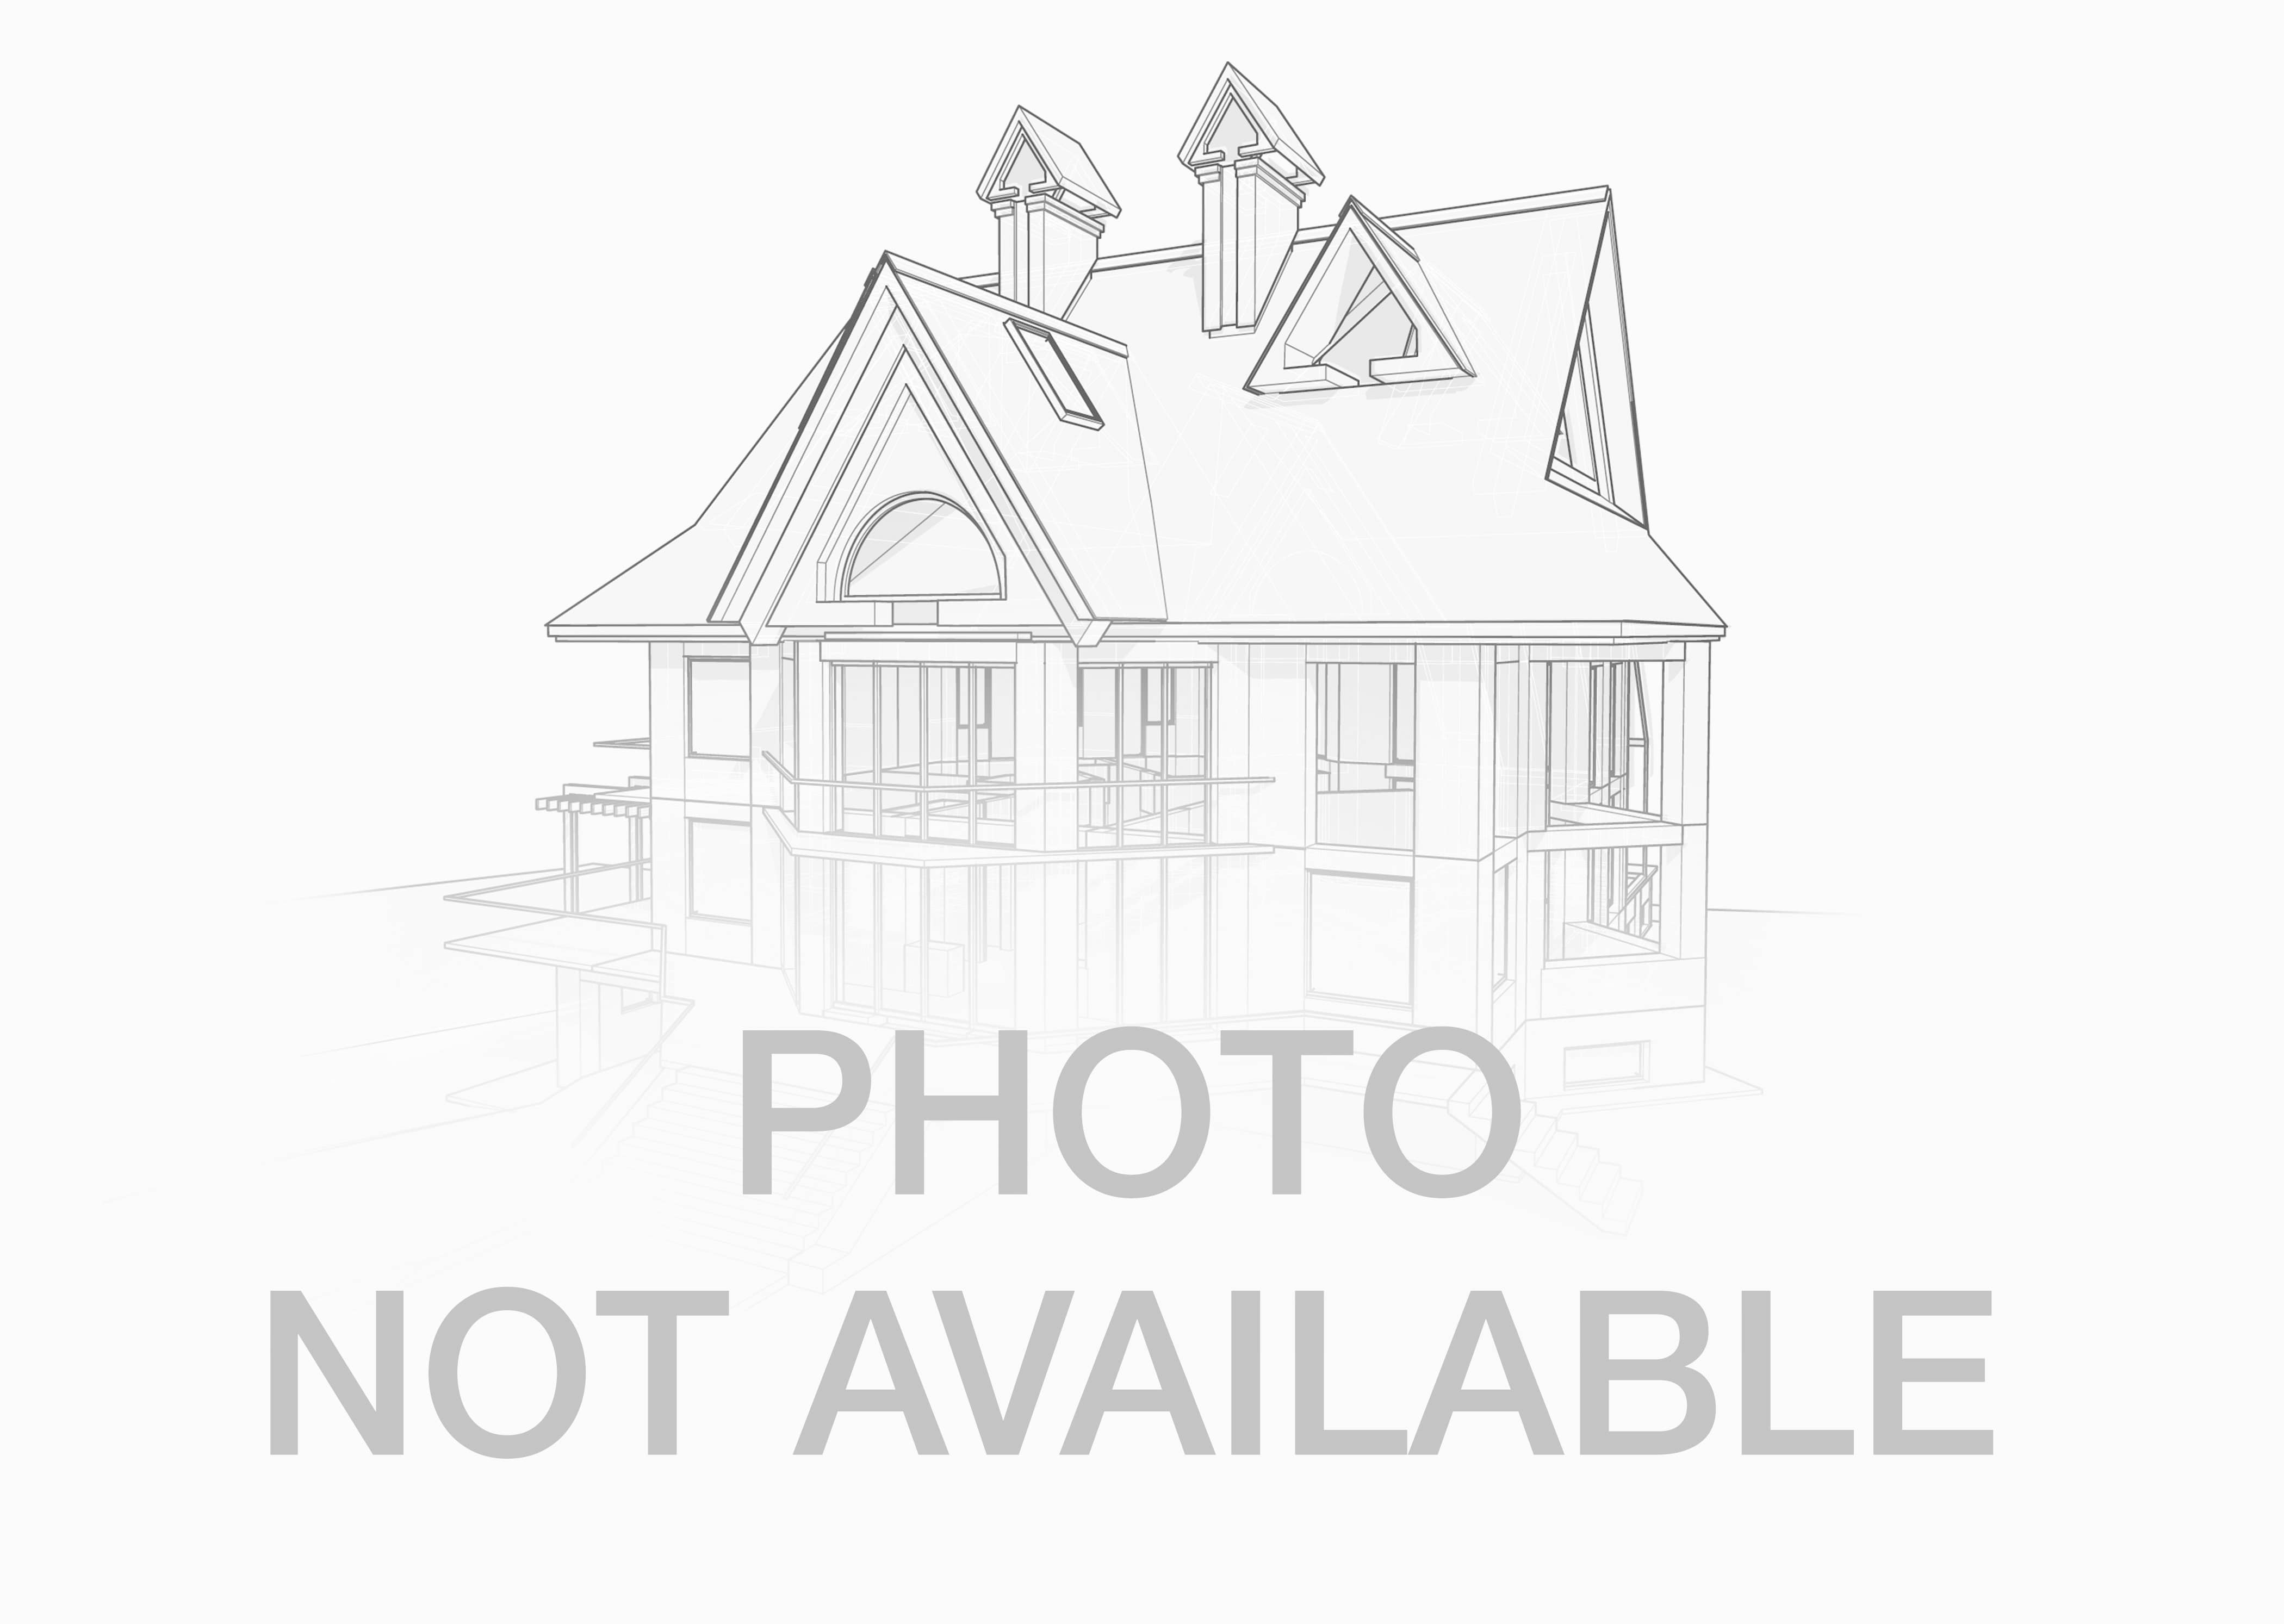 Houses for sale grandville mi house plan 2017 for 3 4 houses in michigan